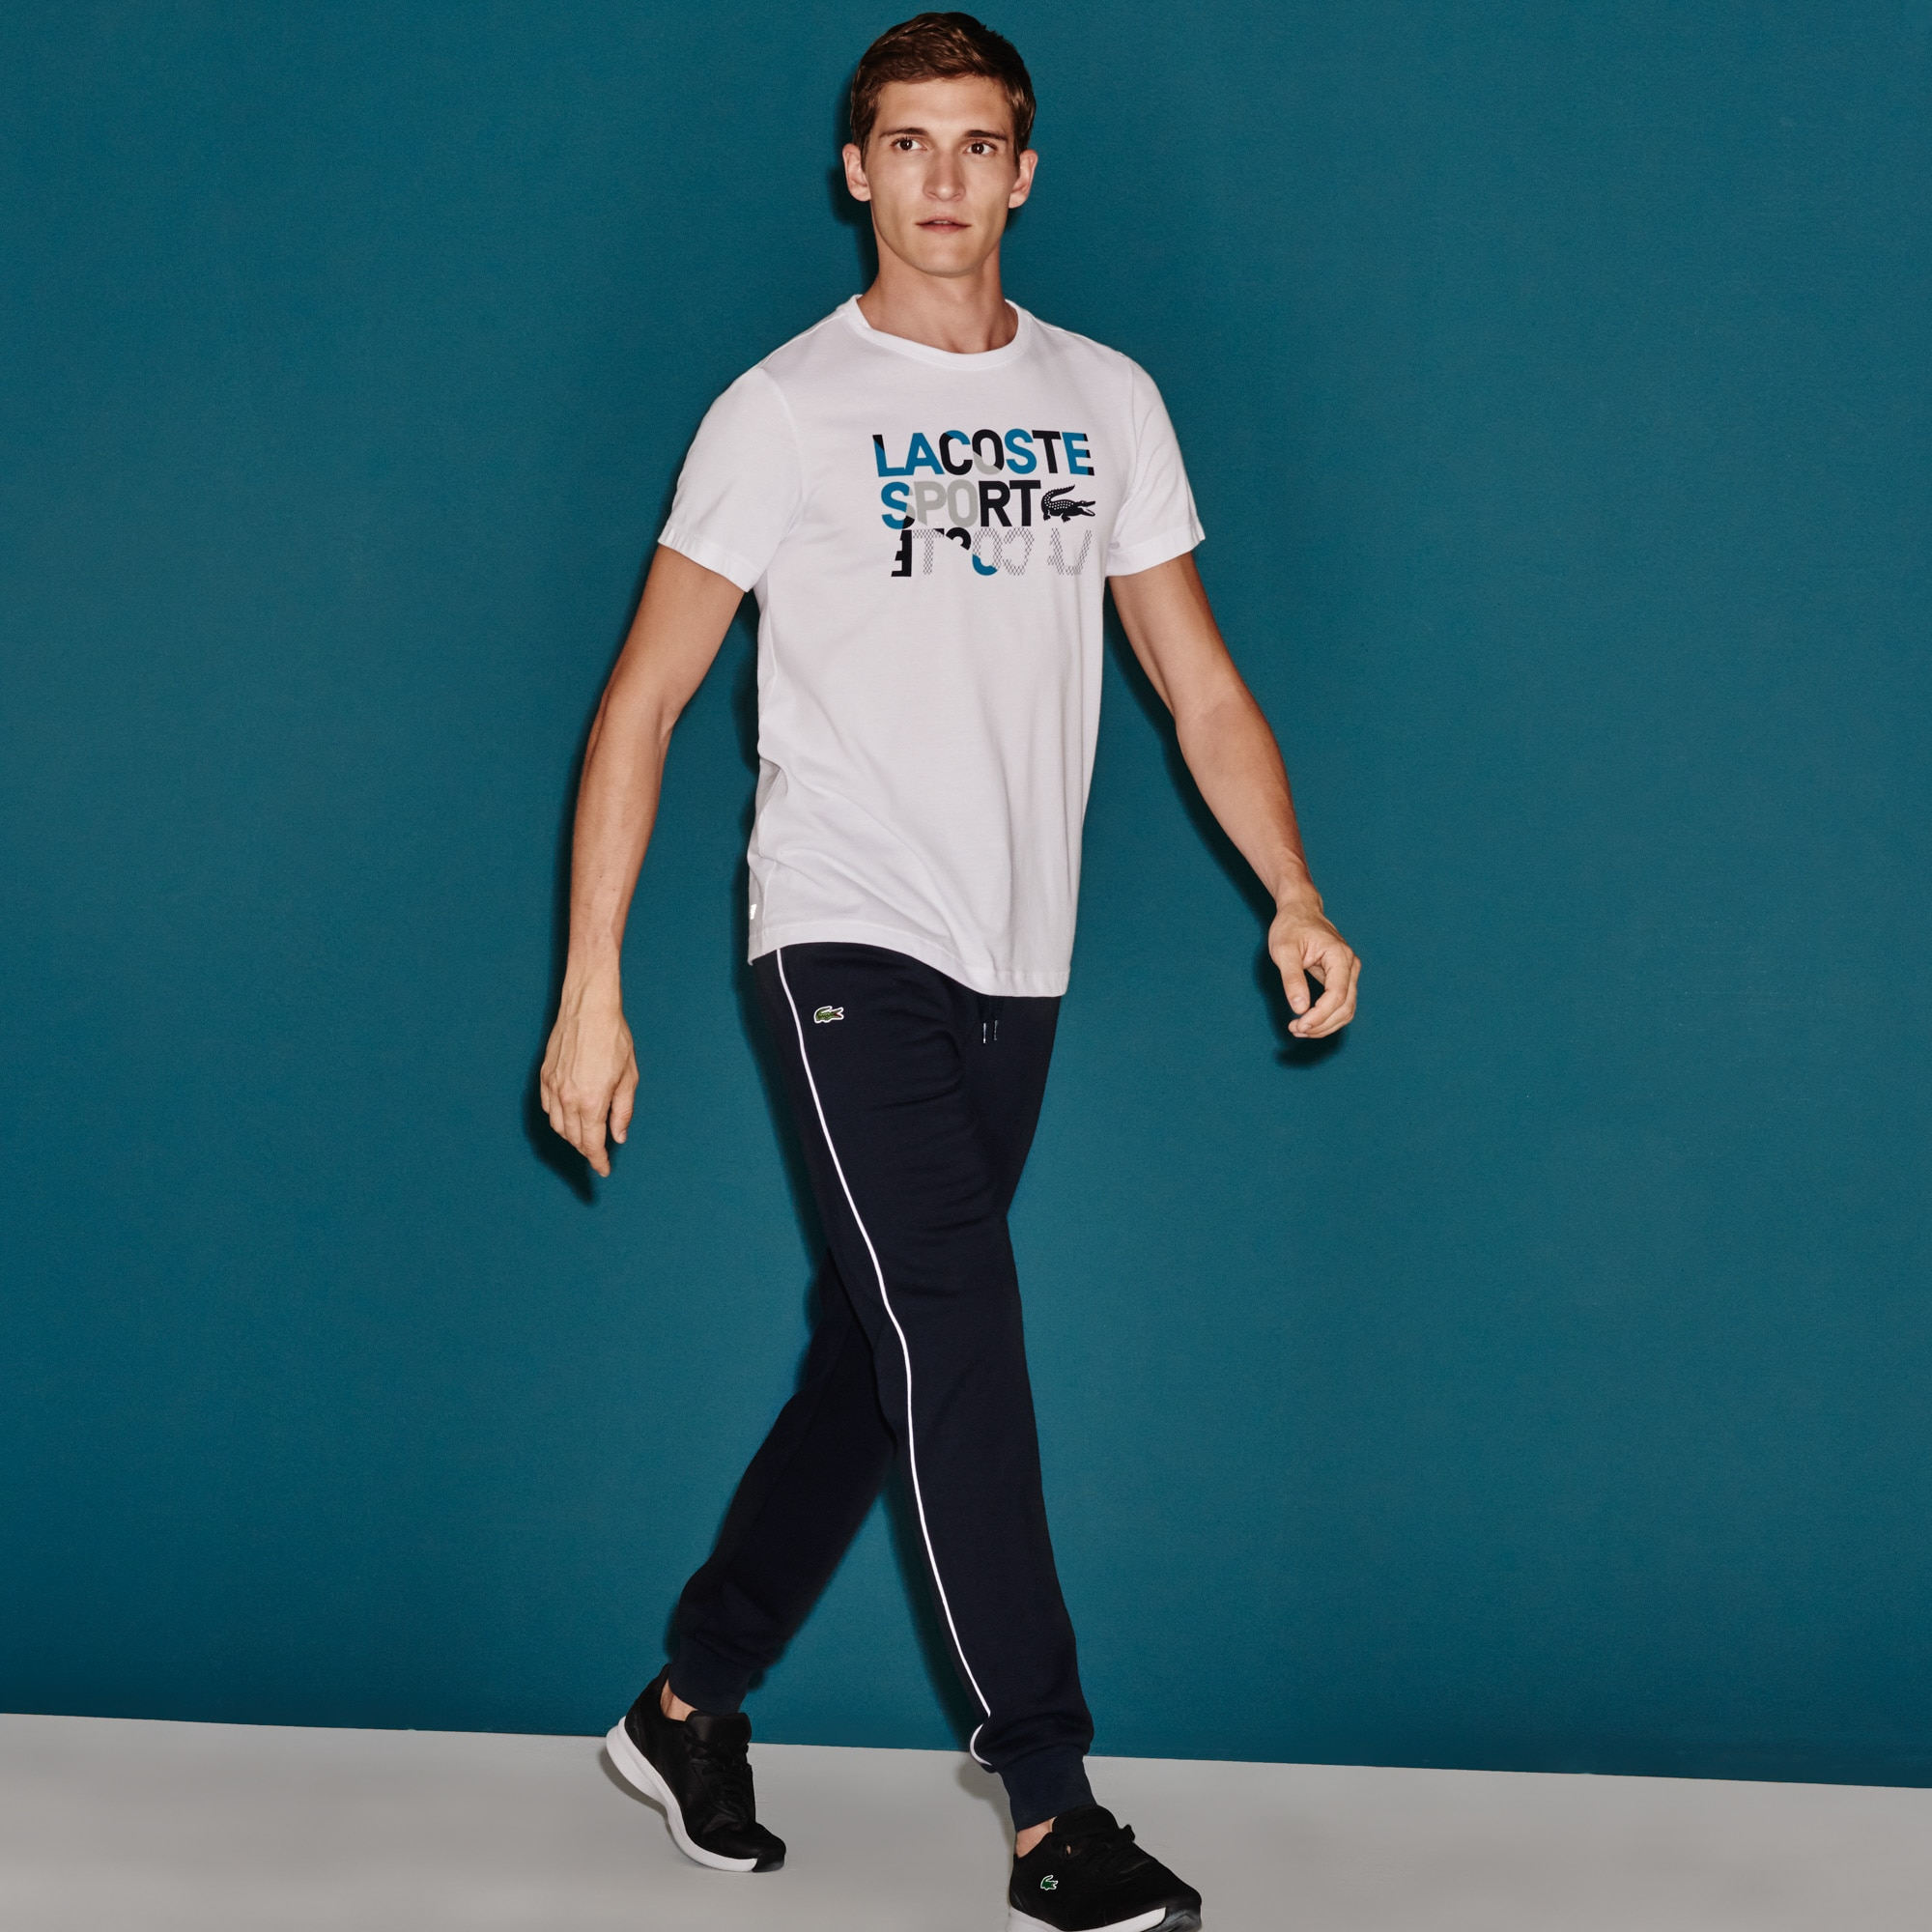 Pantalon de survêtement Tennis Lacoste SPORT en molleton avec piping